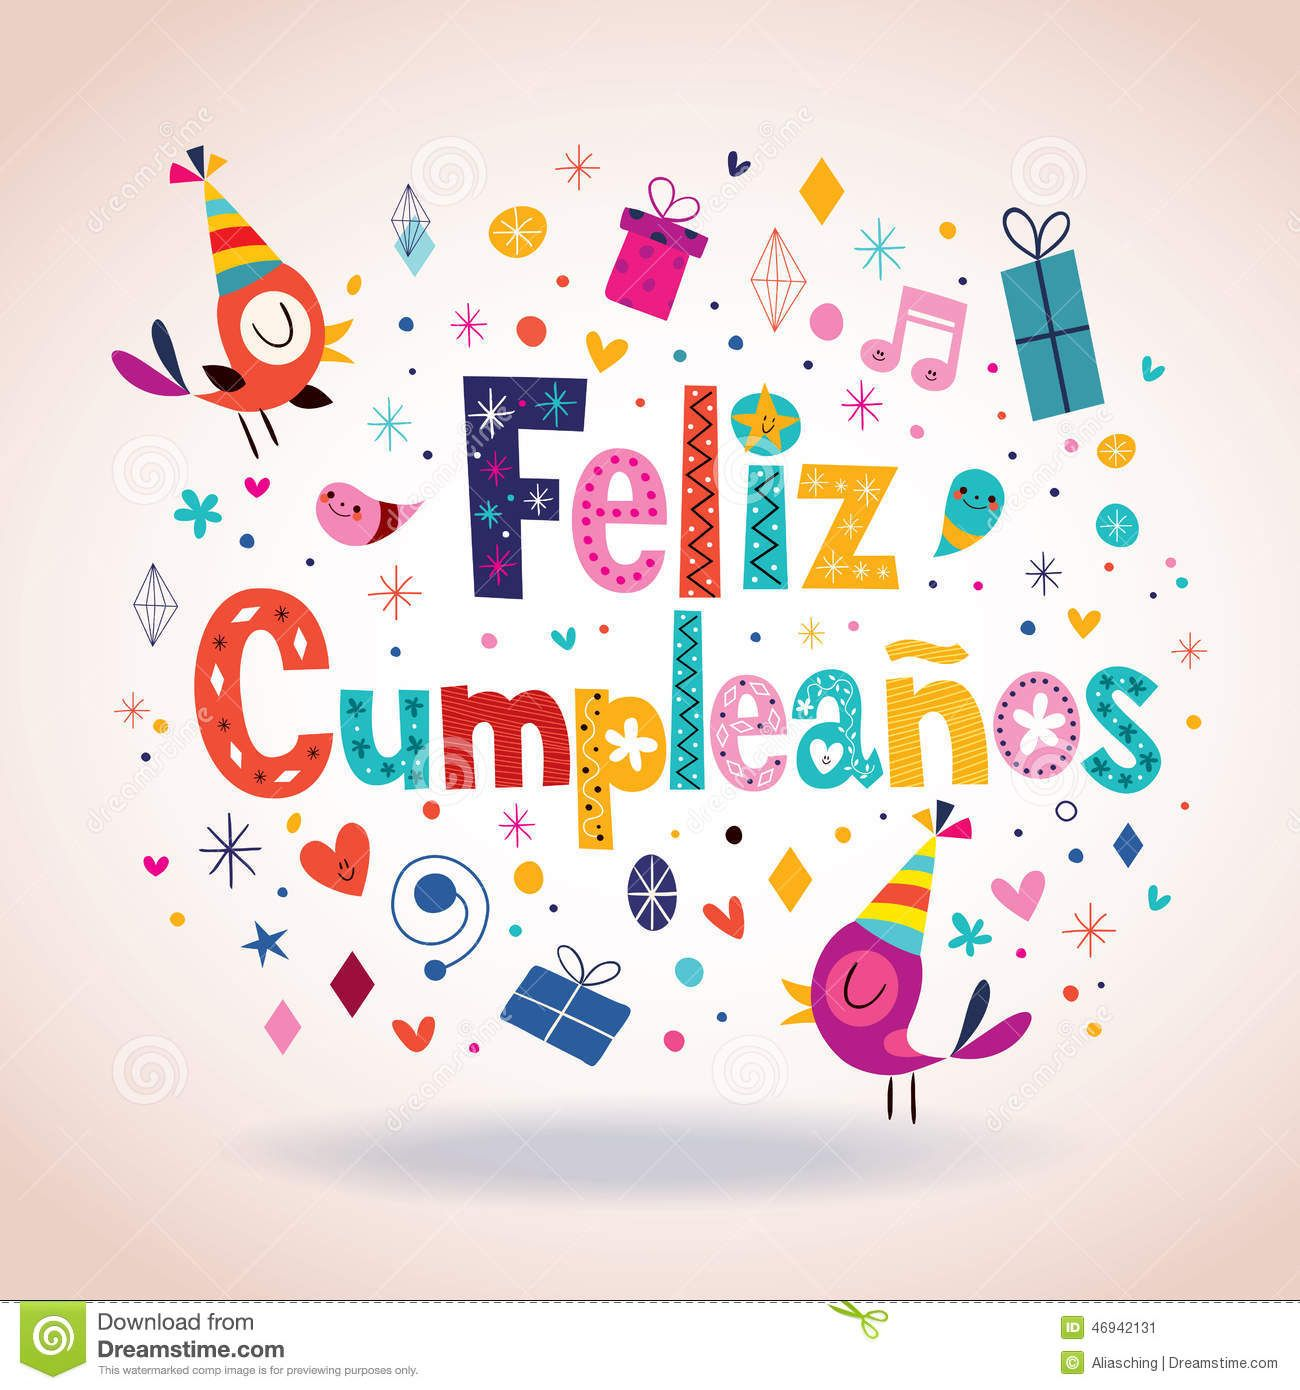 Feliz Cumpleanos Happy Birthday In Spanish Card Download From – Birthday Cards in Spanish